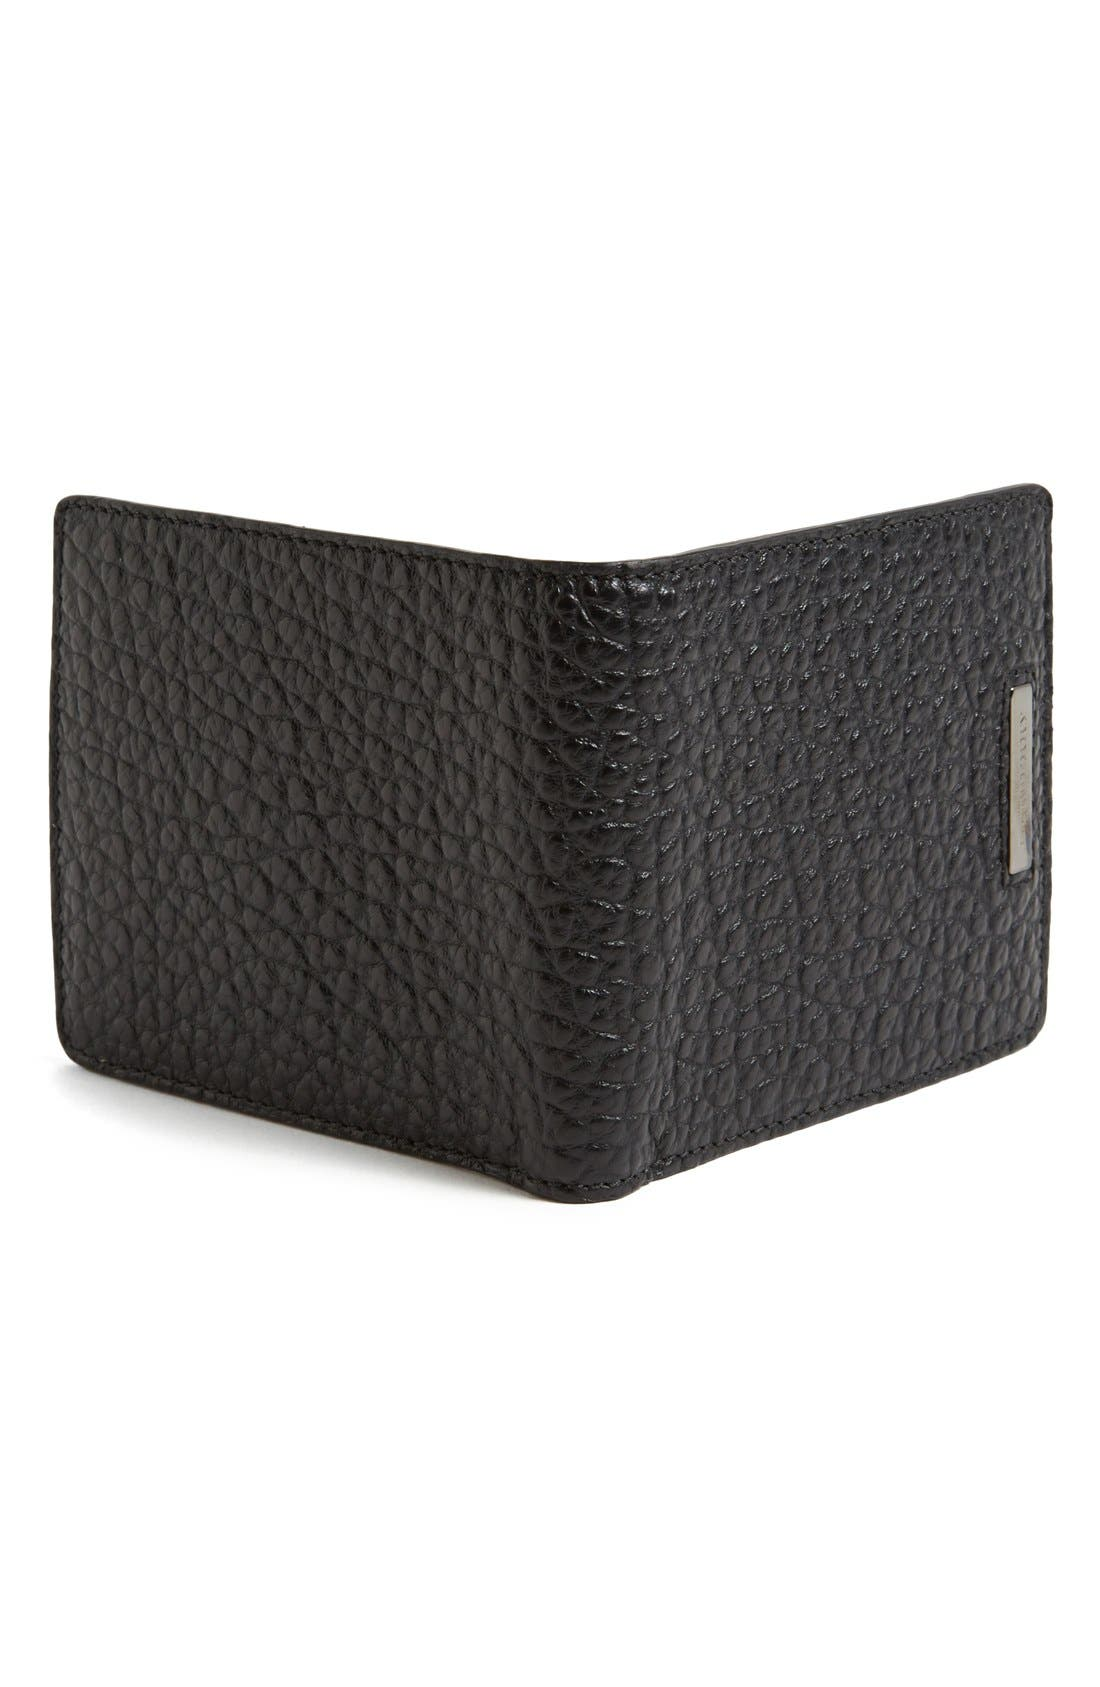 BURBERRY,                             Hipfold Wallet,                             Alternate thumbnail 2, color,                             001